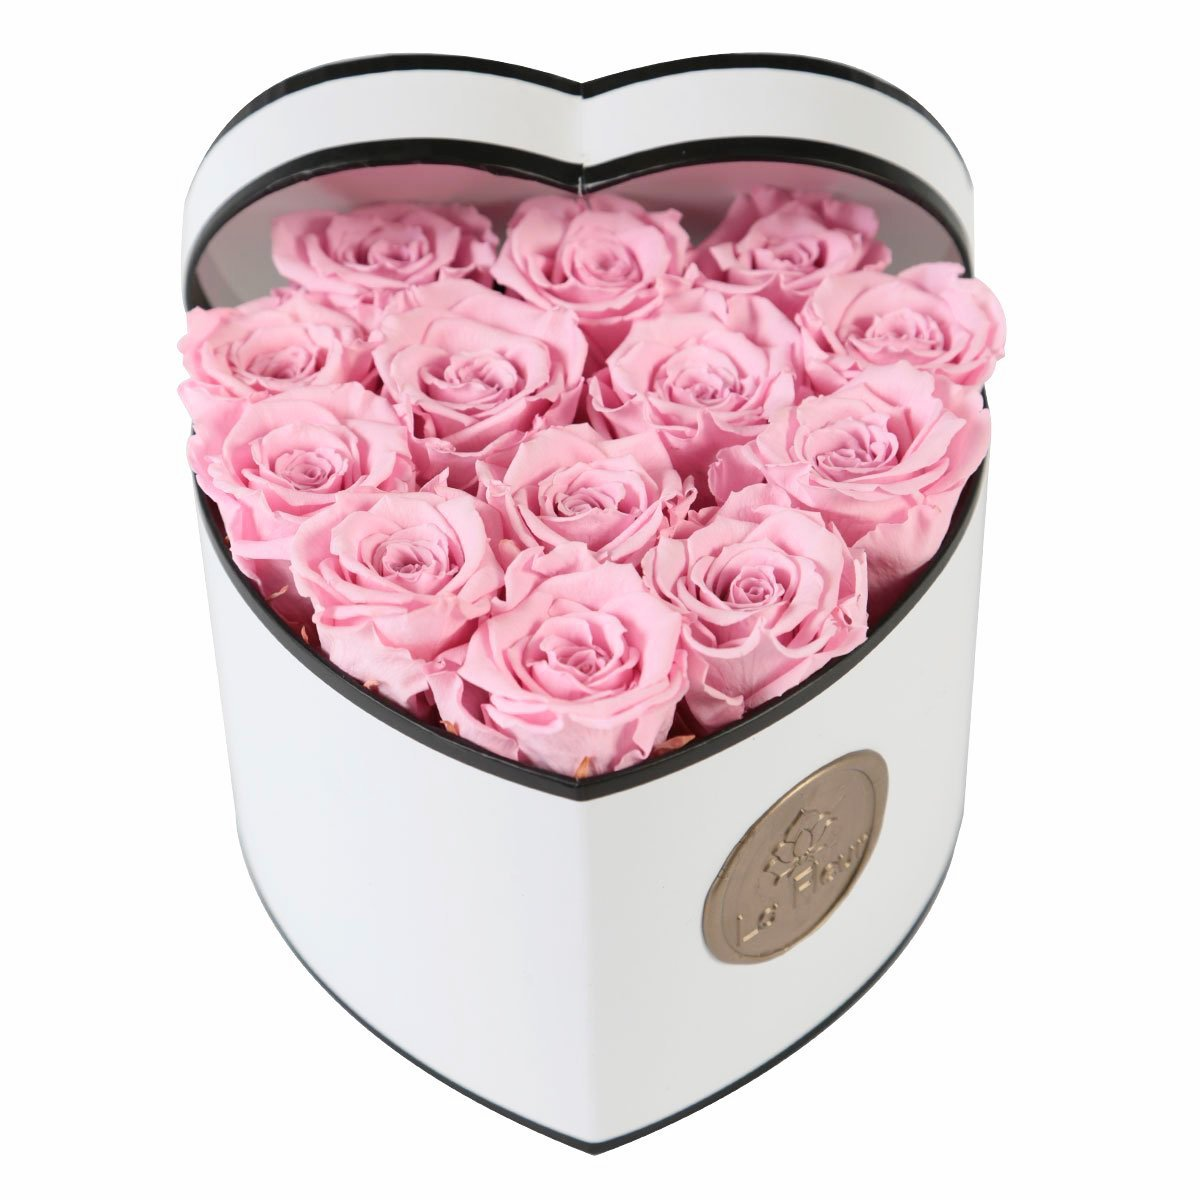 La Fleur Petite Heart - I said we wouldn't talk about roses. However, this gorgeous arrangement lasts an entire year! Available in multiple designs, colors, and boxes this arrangement is the perfect gift so you won't have to buy more flowers until next Valentine's Day.